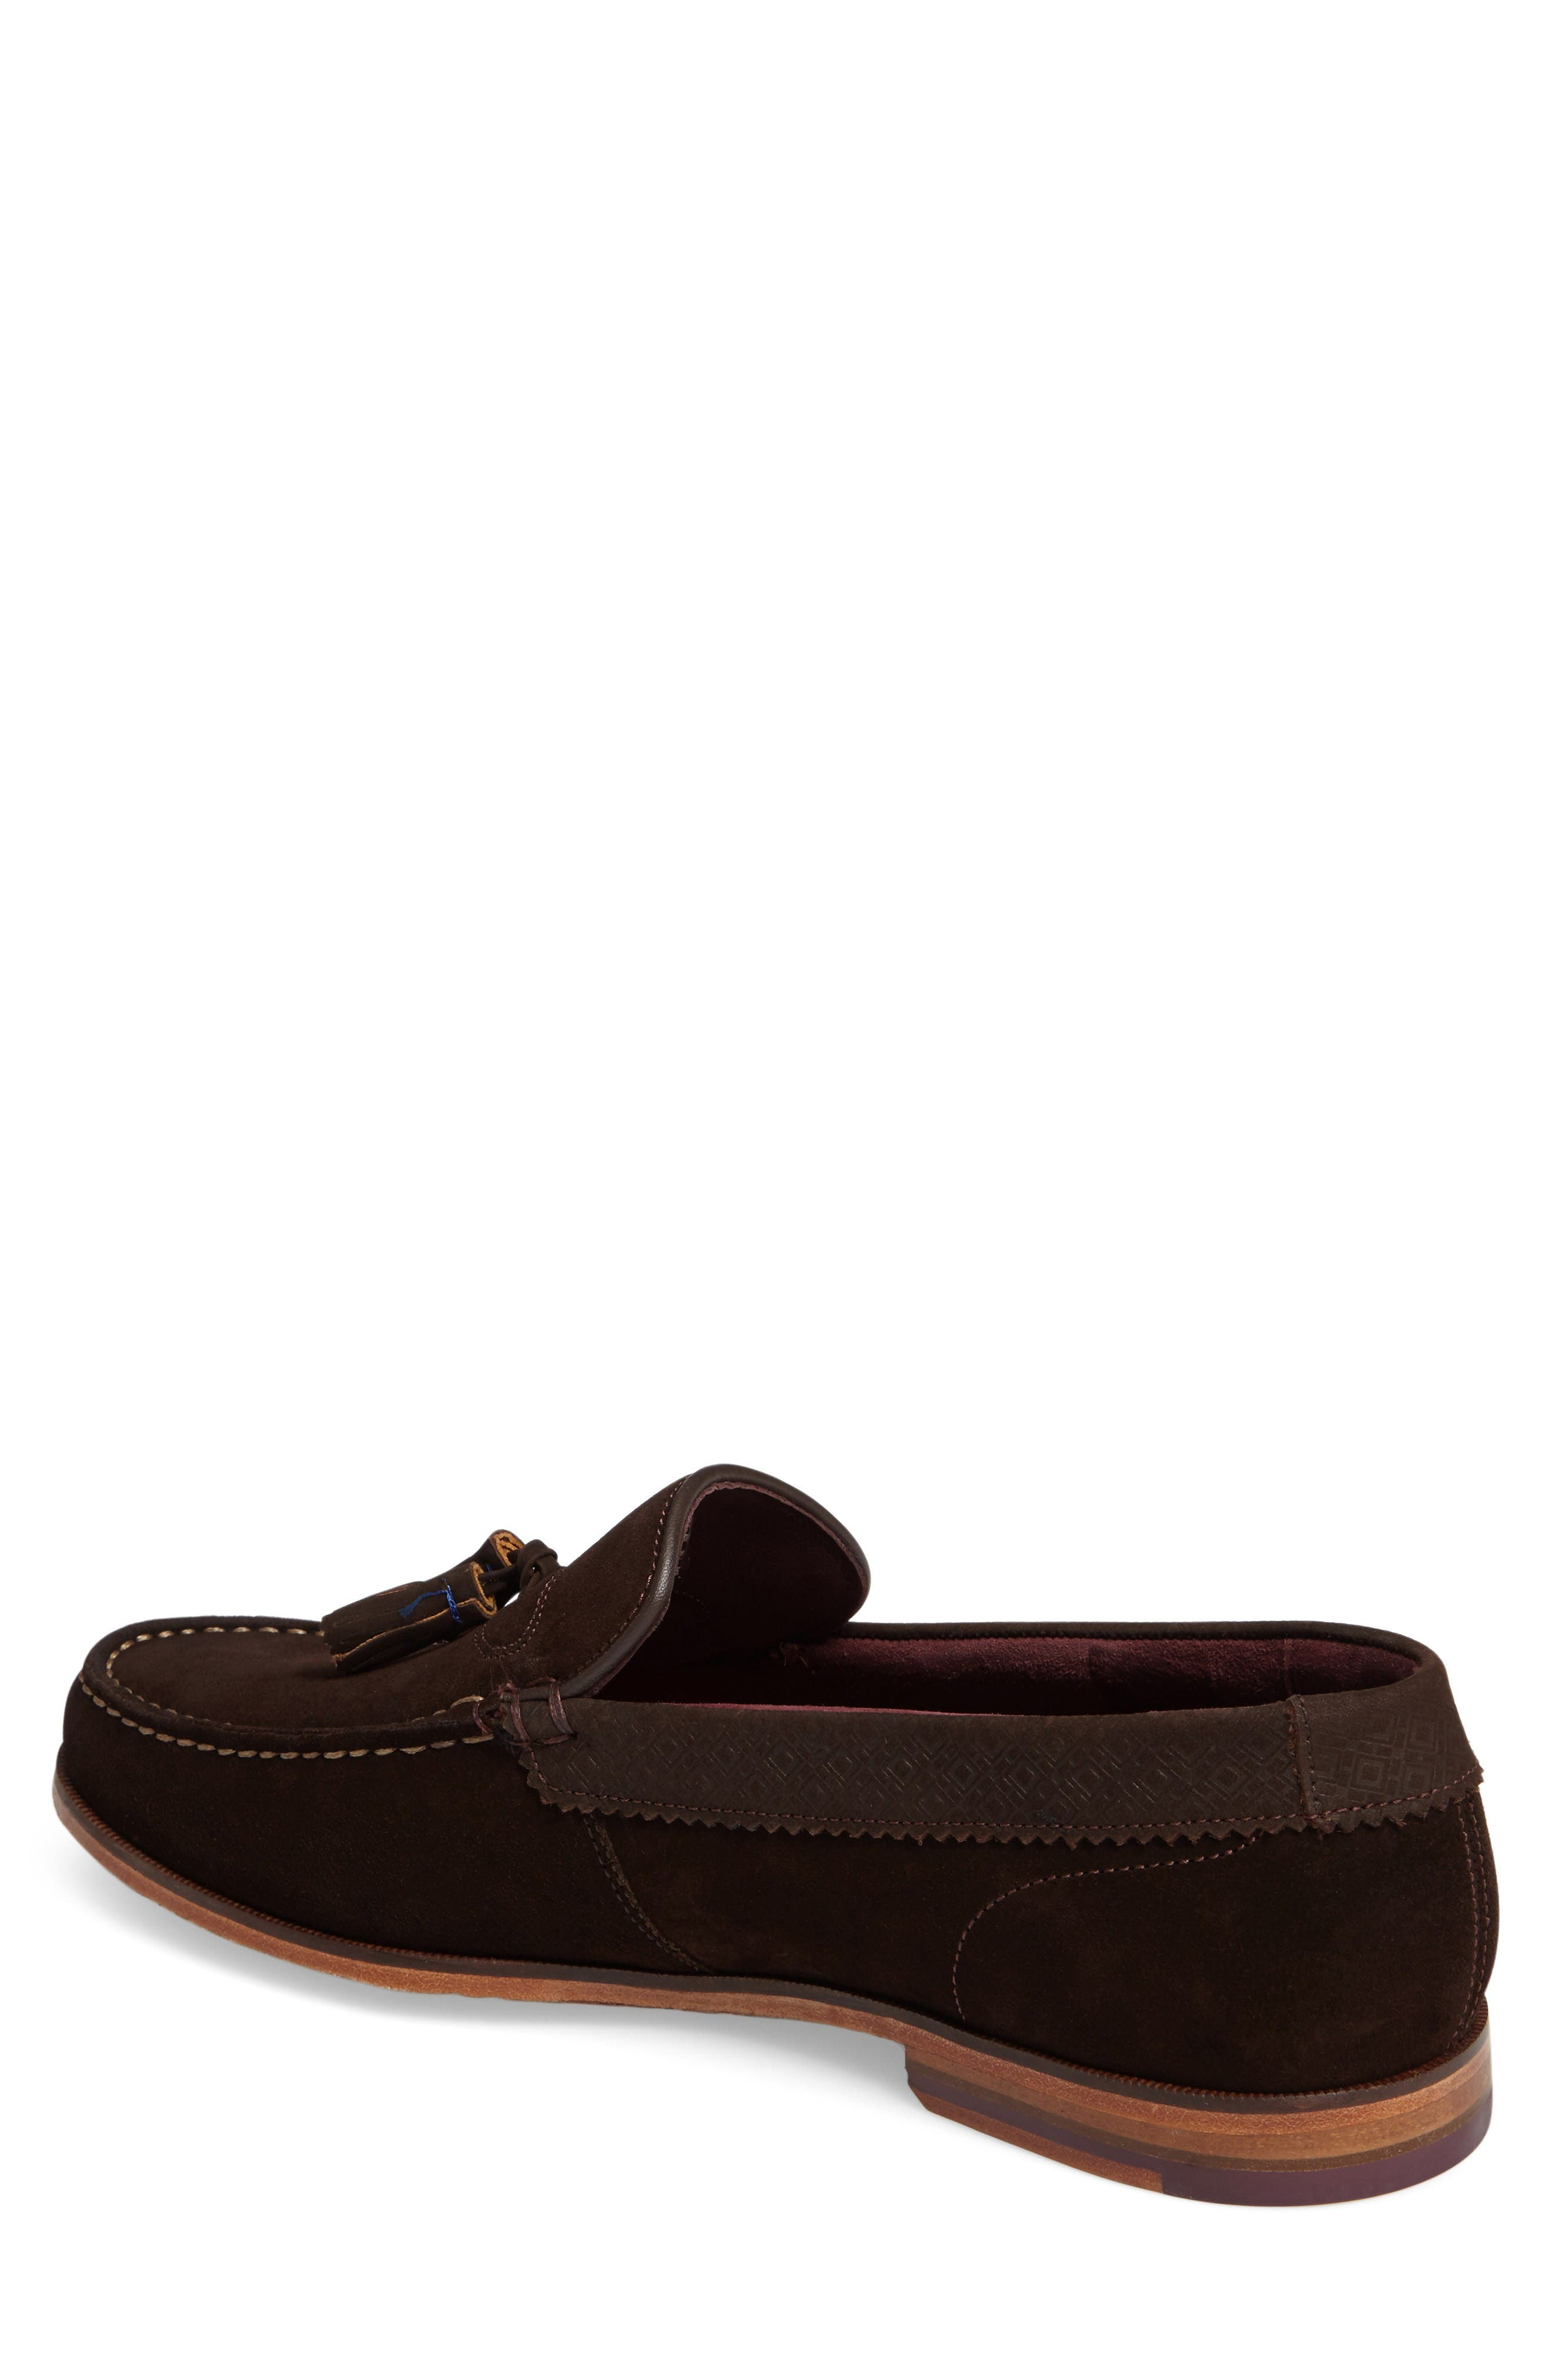 Dougge Tassel Loafer,                             Alternate thumbnail 2, color,                             Brown Suede